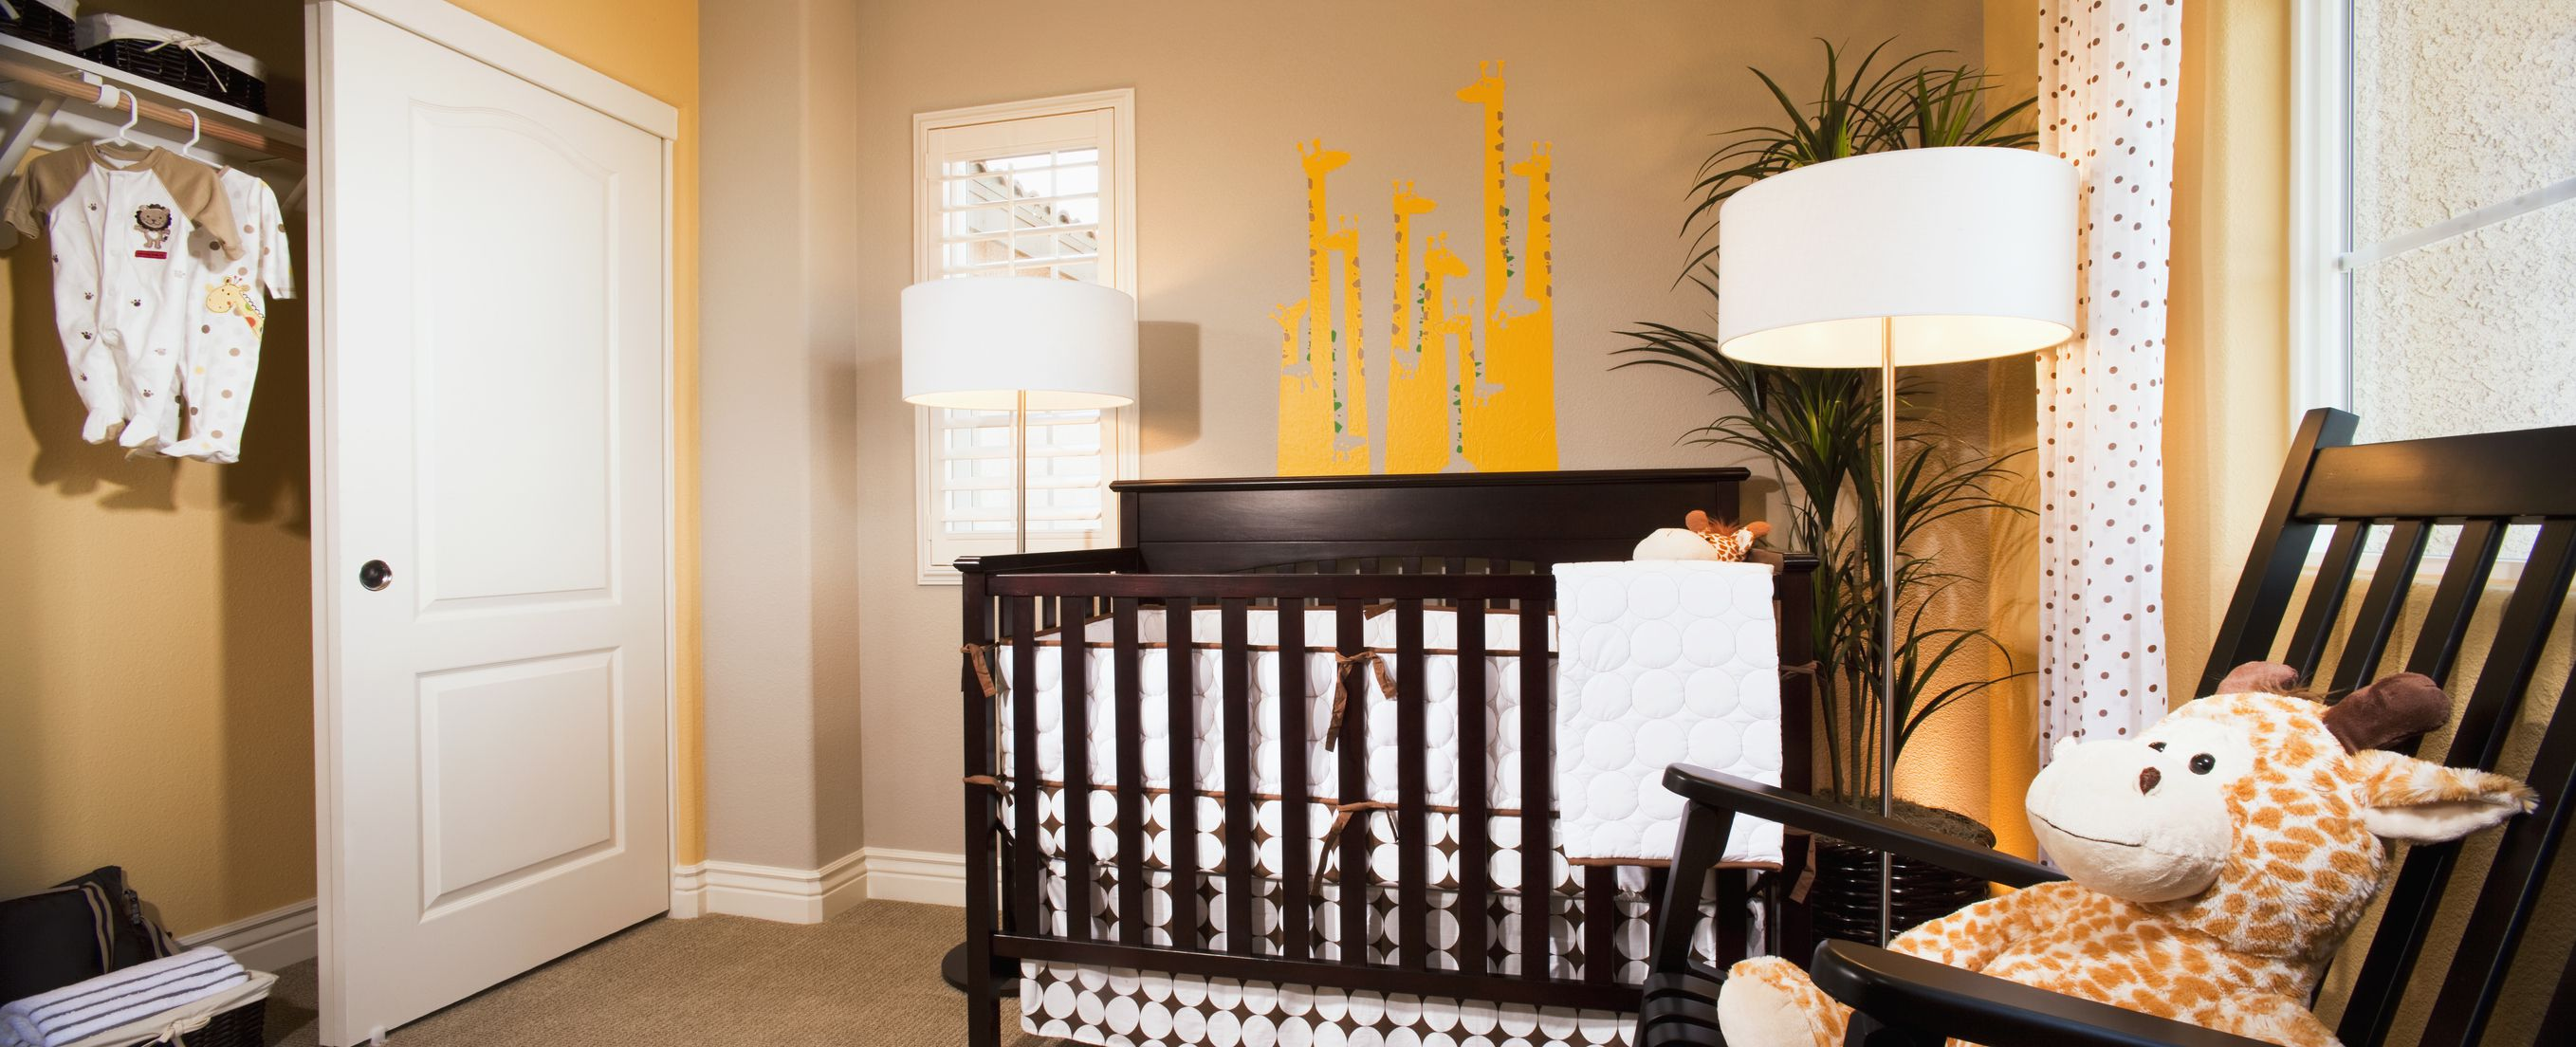 10 Tips For Lighting A Children S Nursery